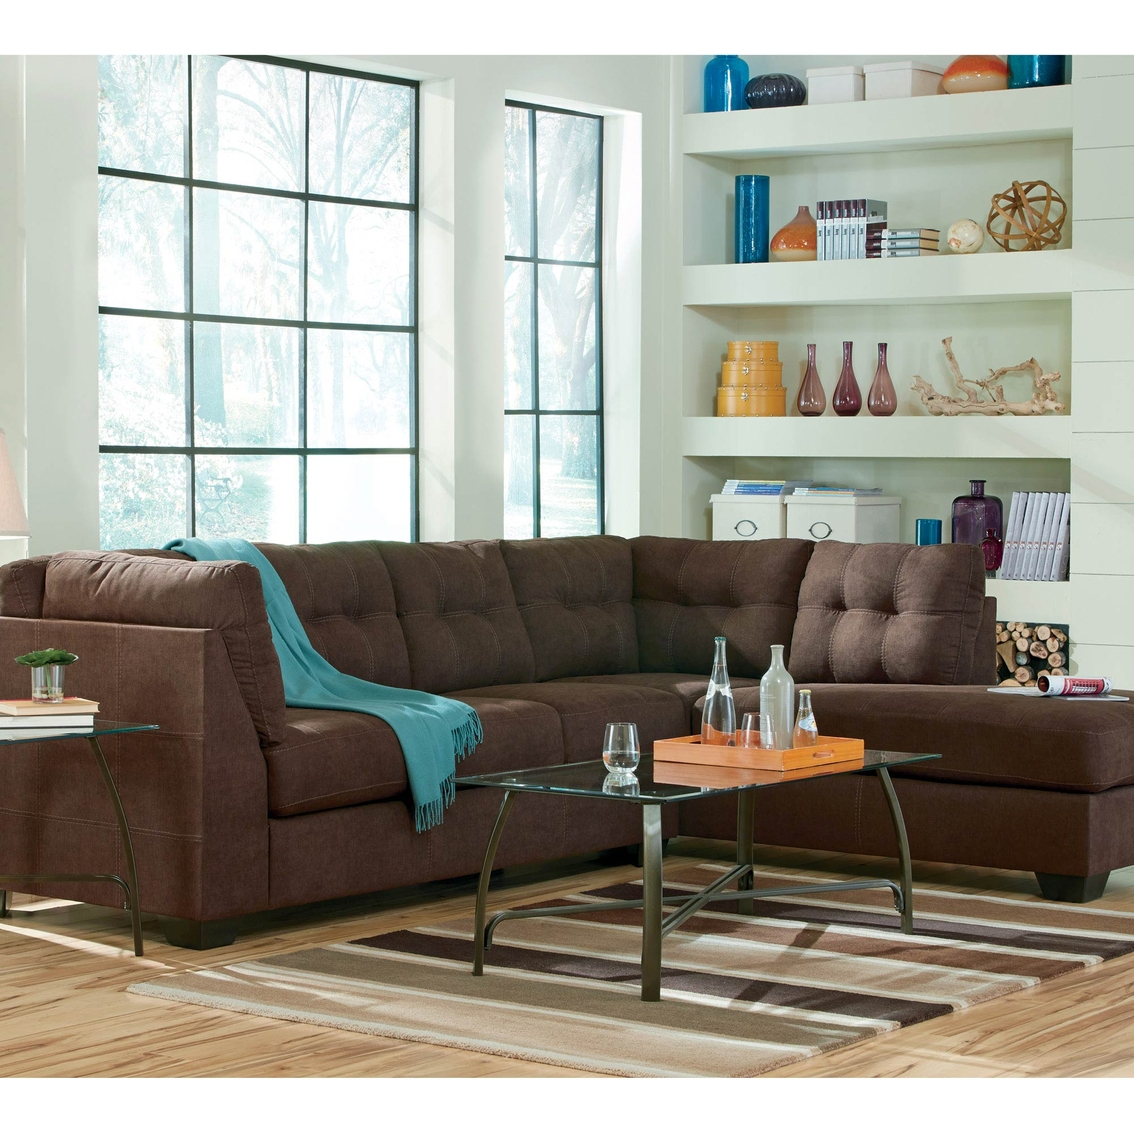 Well Liked Meyer 3 Piece Sectionals With Laf Chaise With Benchcraft Maier 2 Pc (View 19 of 20)